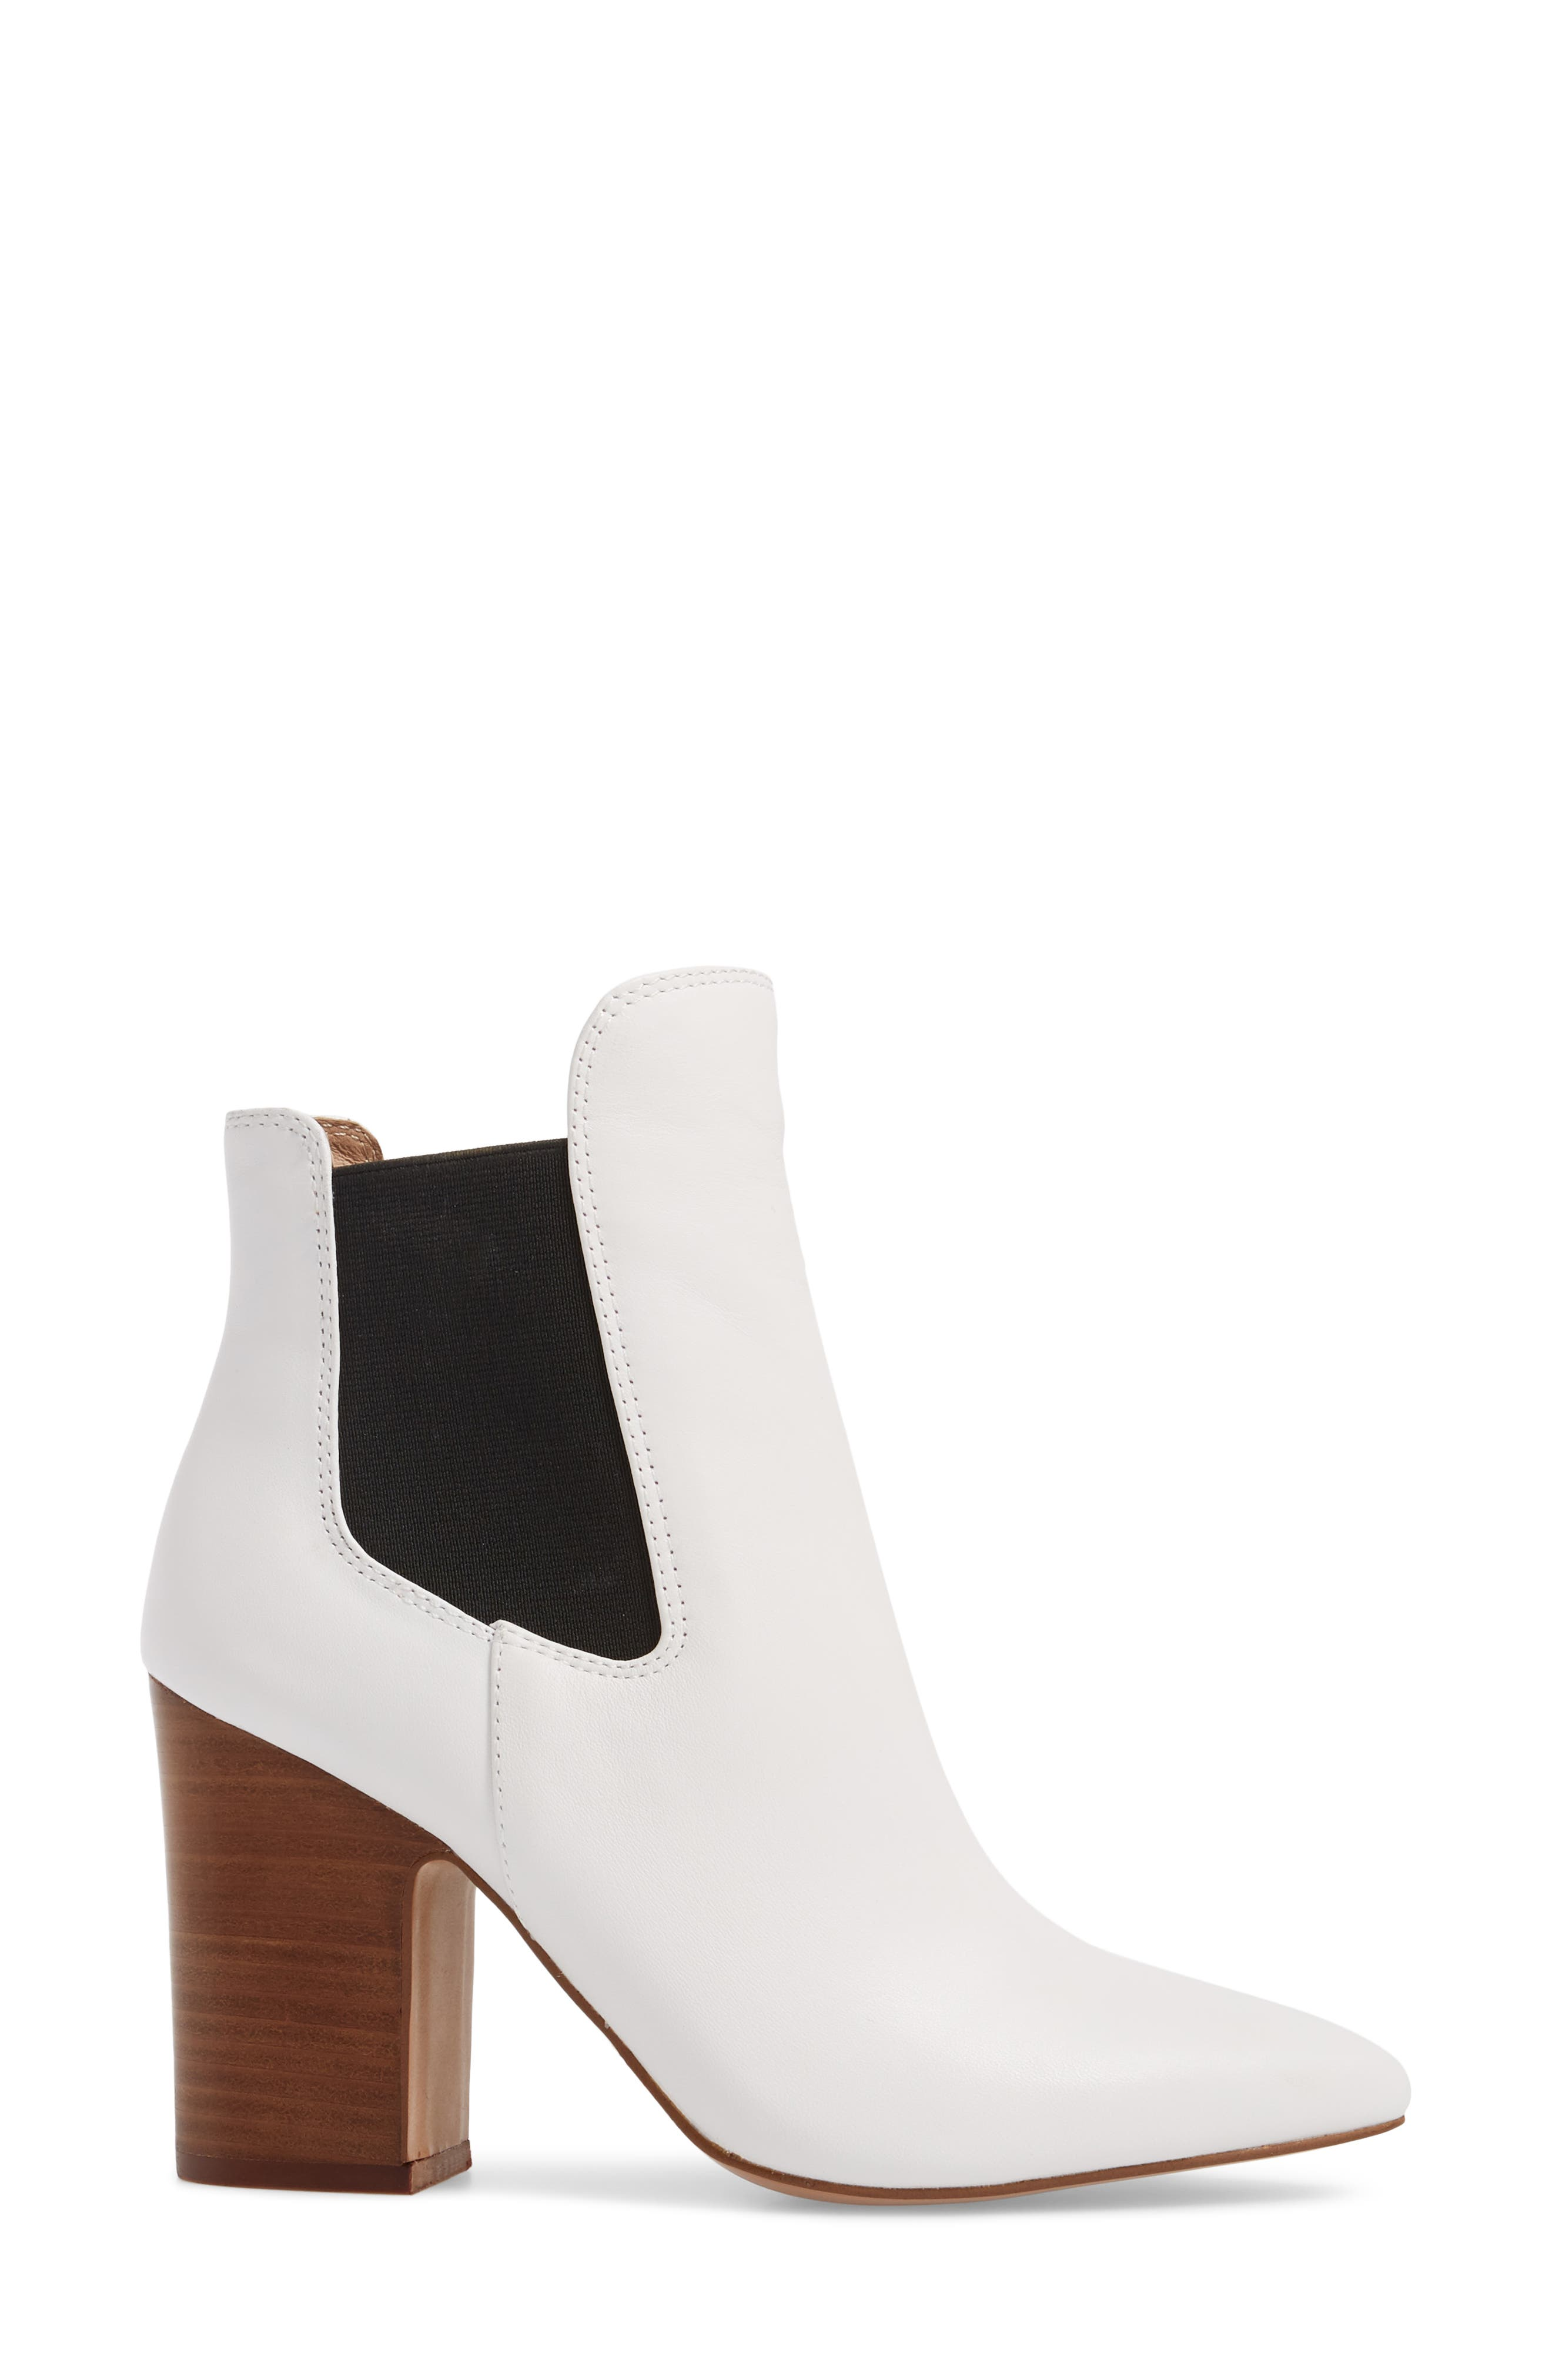 Starlight Bootie,                             Alternate thumbnail 3, color,                             WHITE LEATHER